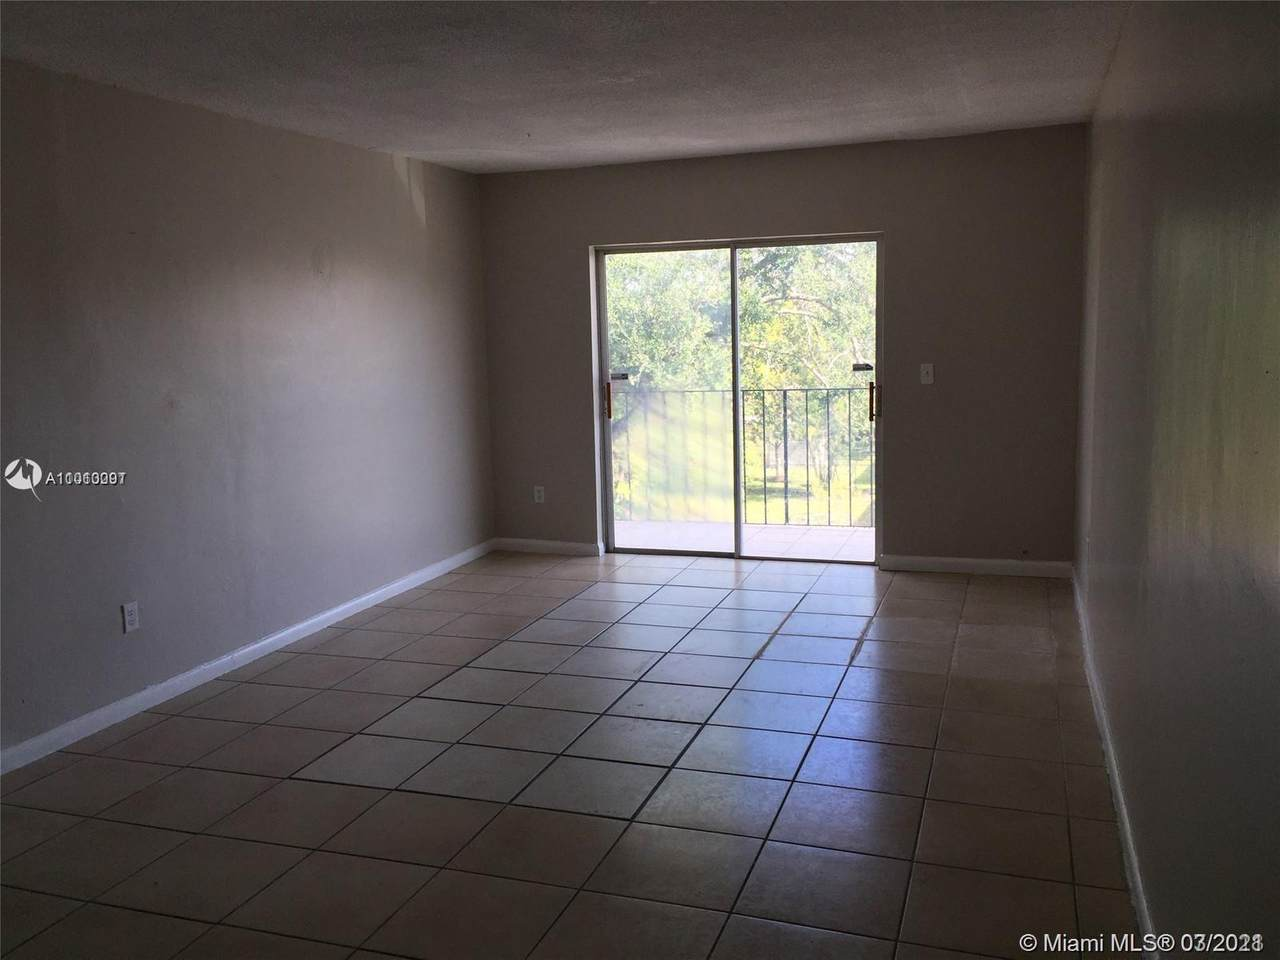 13725 6th Ave - Photo 1